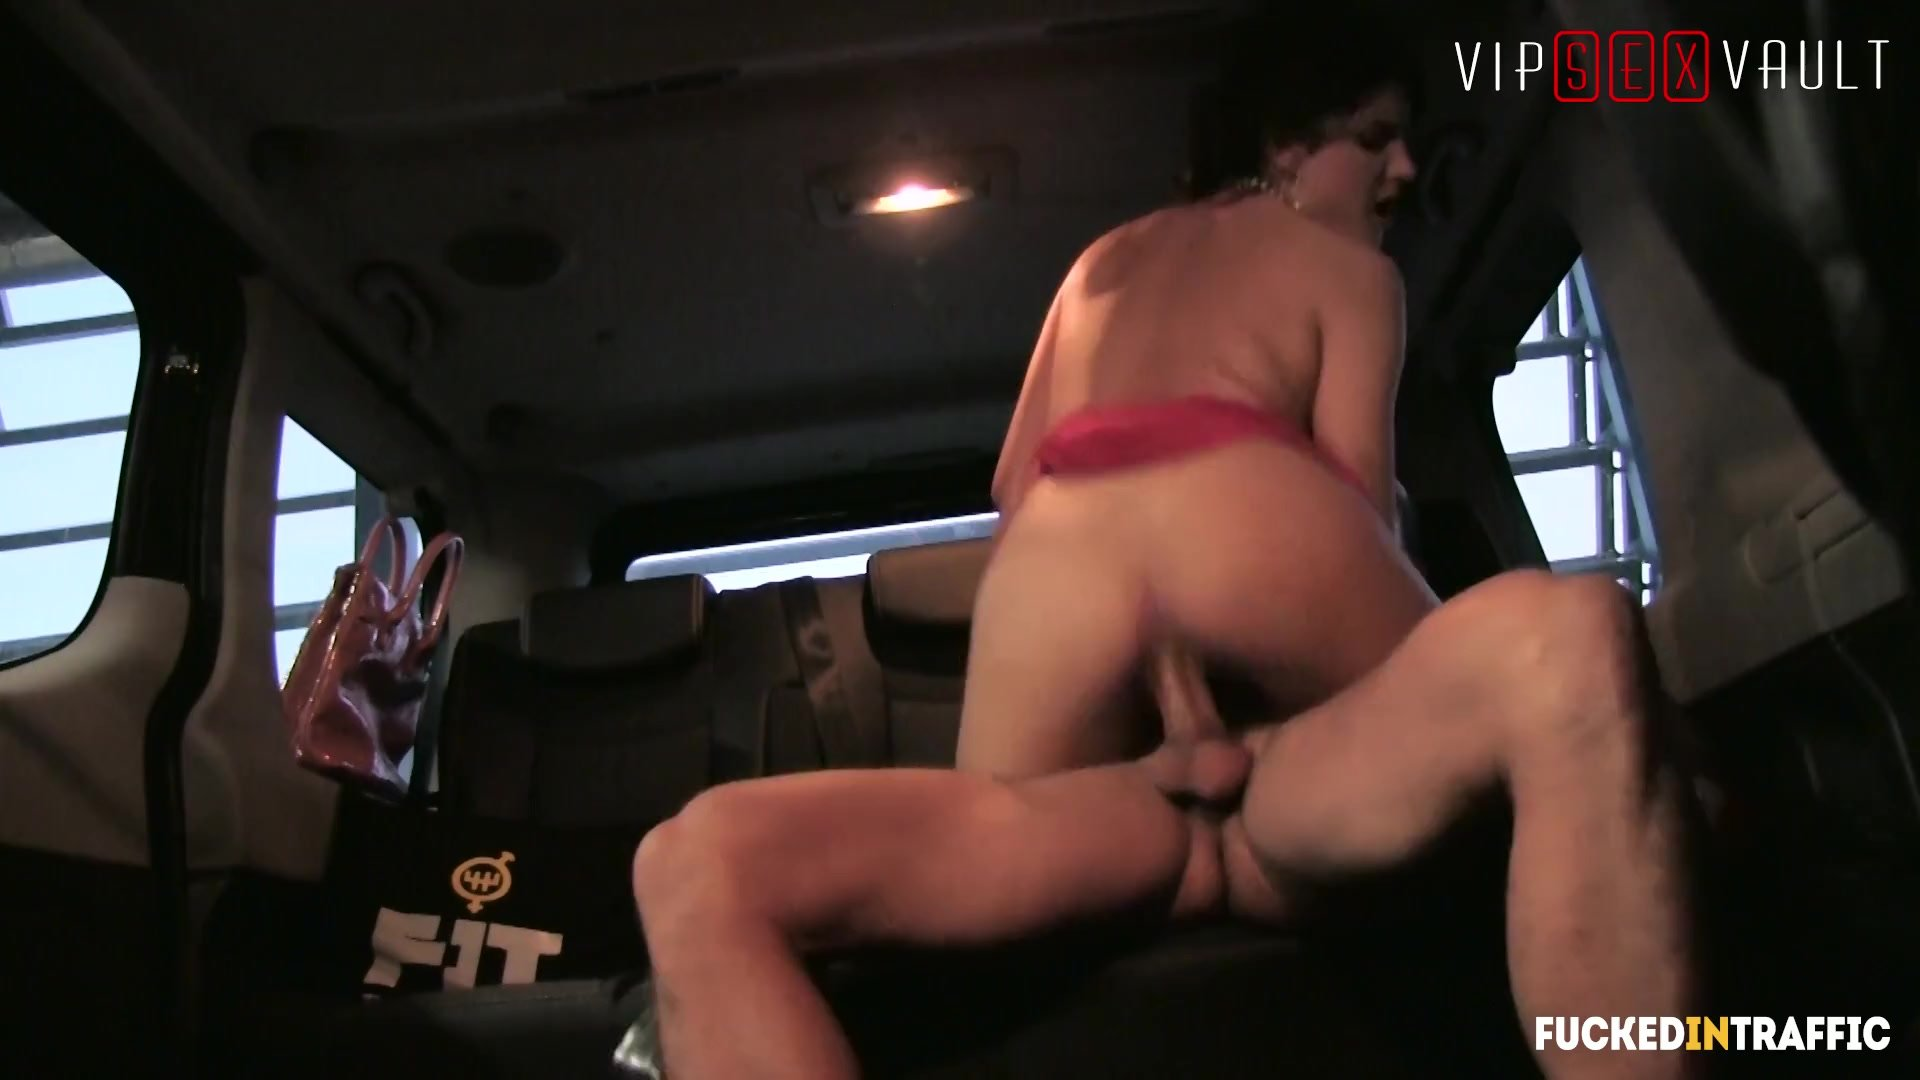 VIPSEXVAULT - Hot Brunette Teen Fucks The Taxi Driver On The Way To Airport